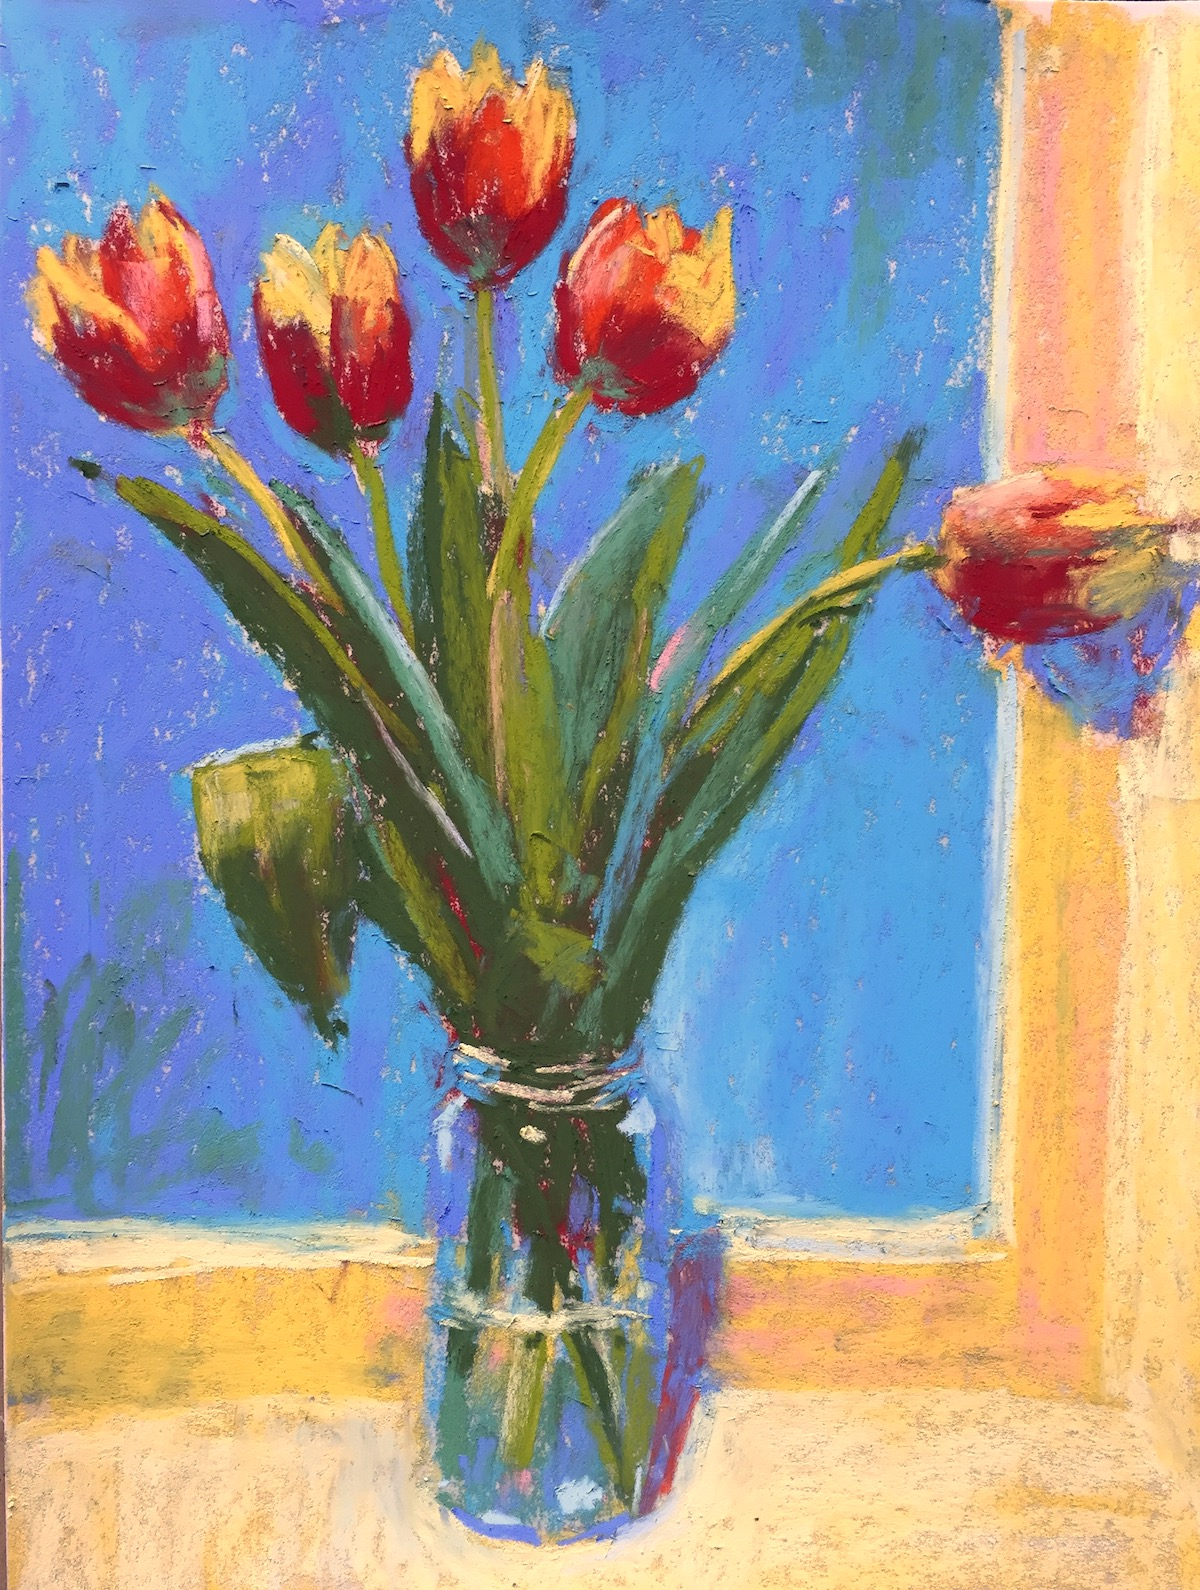 DK Project: Gail Sibley, Tulips 1, pastel, Unison pastels on UArt 500 paper, 12 x 9 in